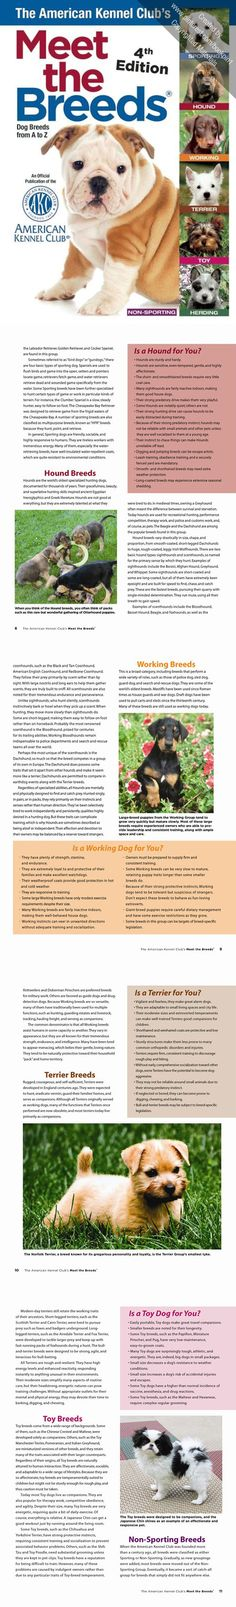 """""""The American Kennel Club's Meet the Breeds"""" now presents profiles and photographs of 199 breeds, representing every AKC-recognized breed."""